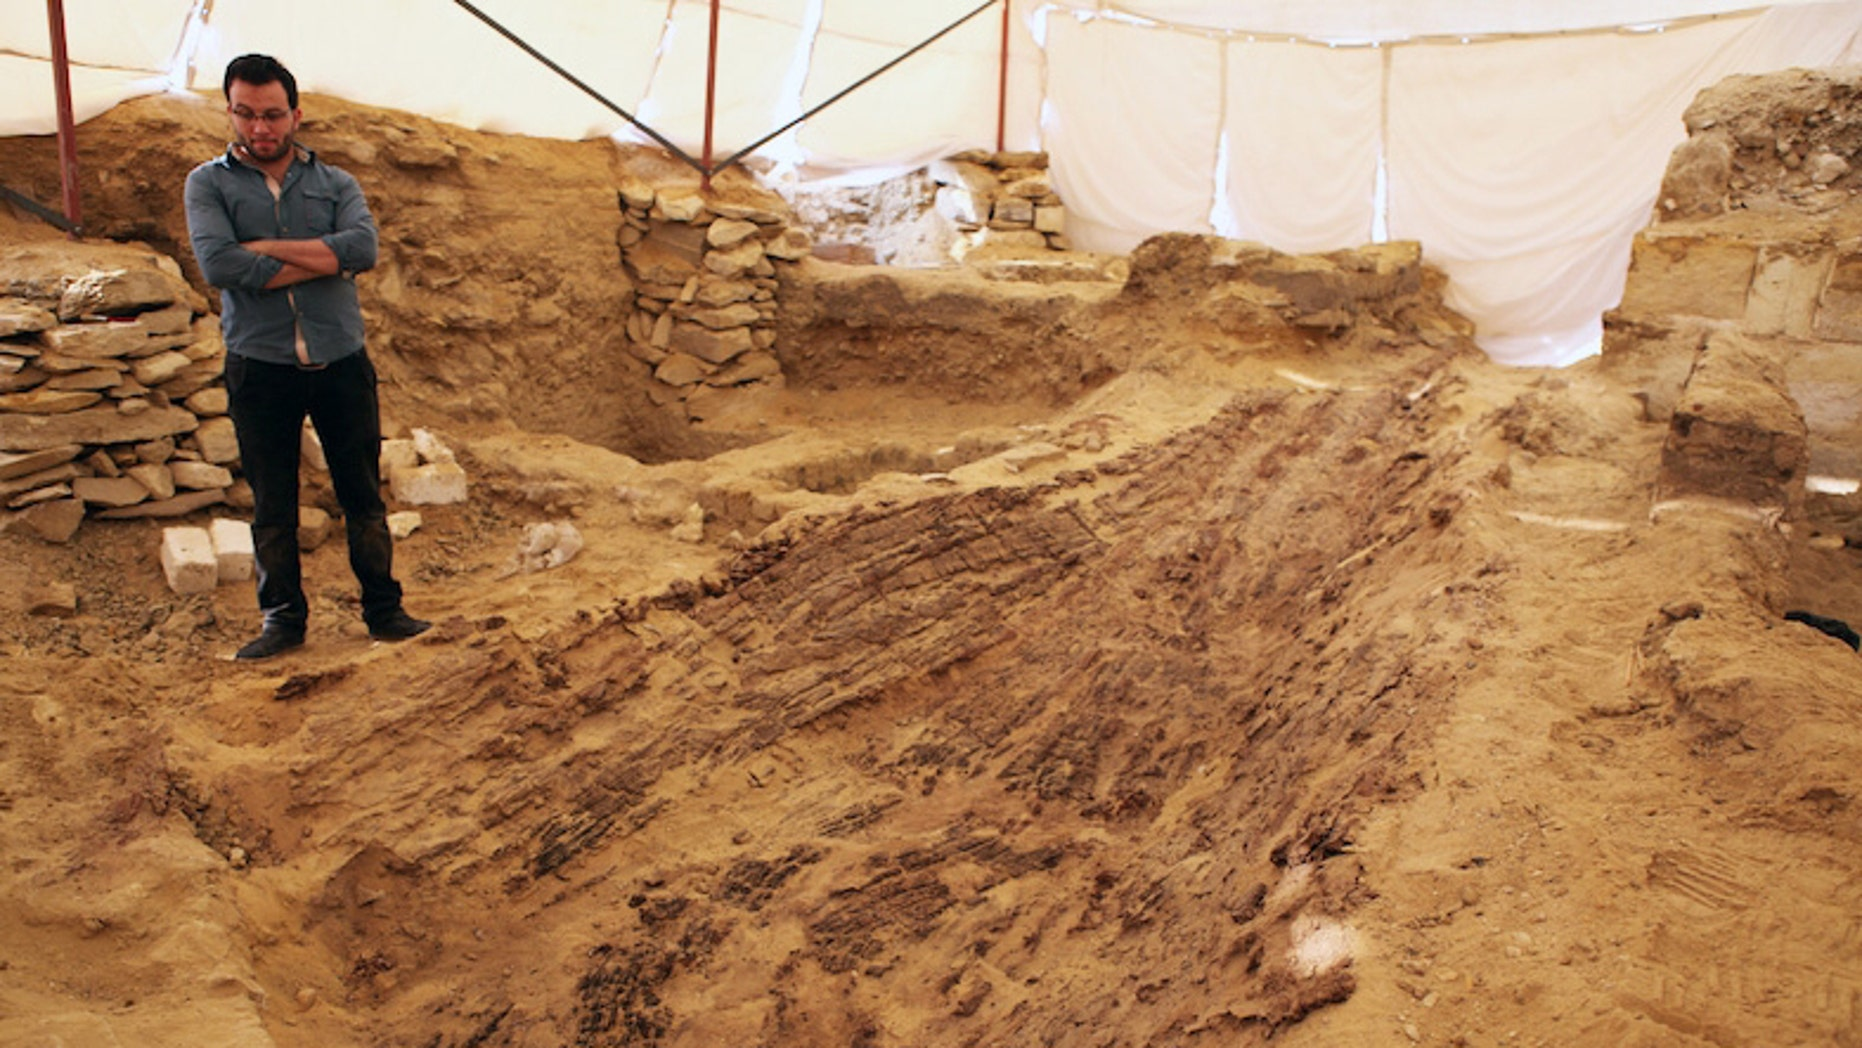 Viiew of the boat during the process of excavation (Archives of the Czech Institute of Egyptology, V.Dulikova)